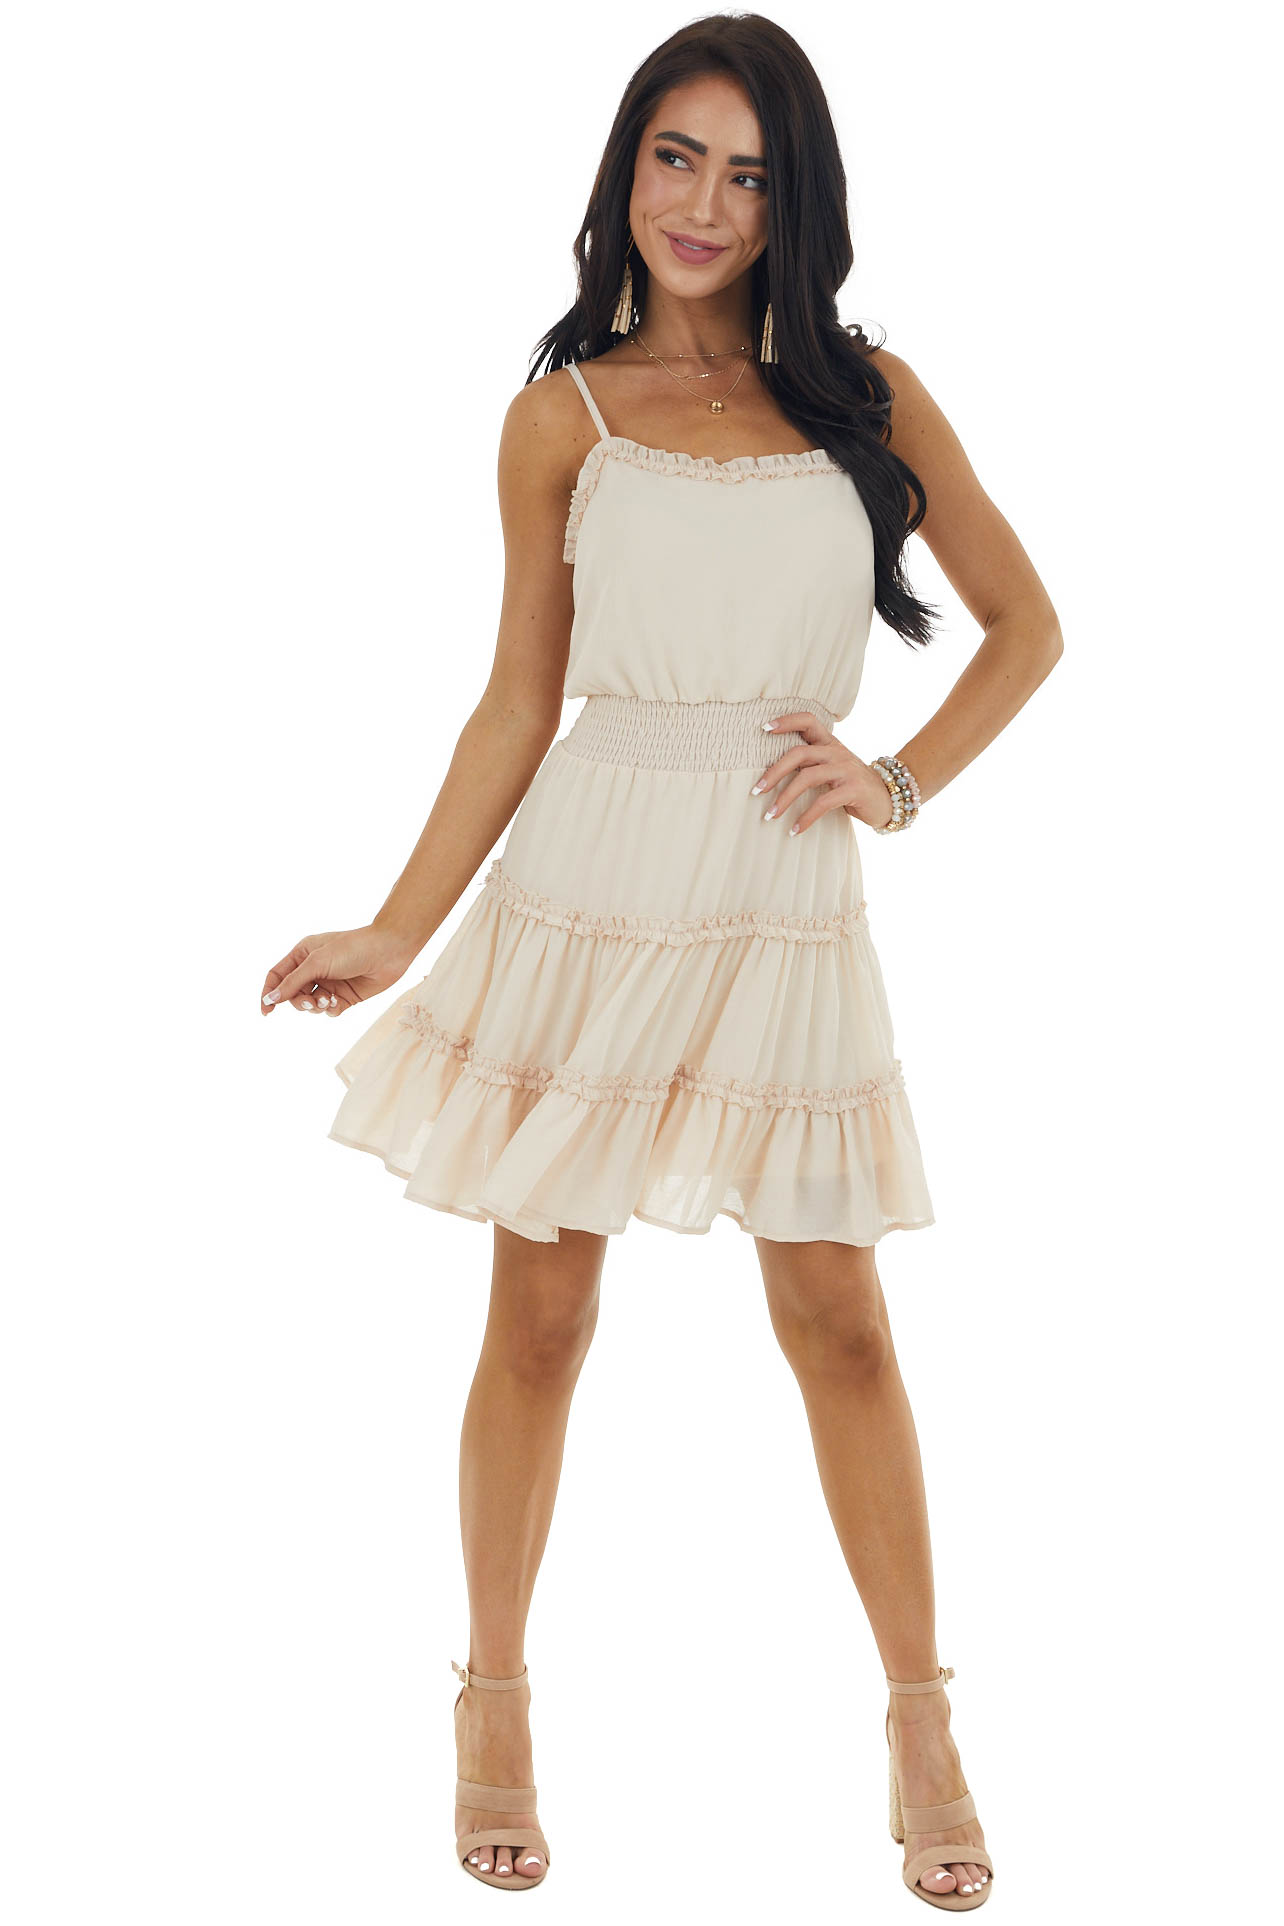 Beige Tiered Woven Mini Dress with Ruffle Detail and Straps